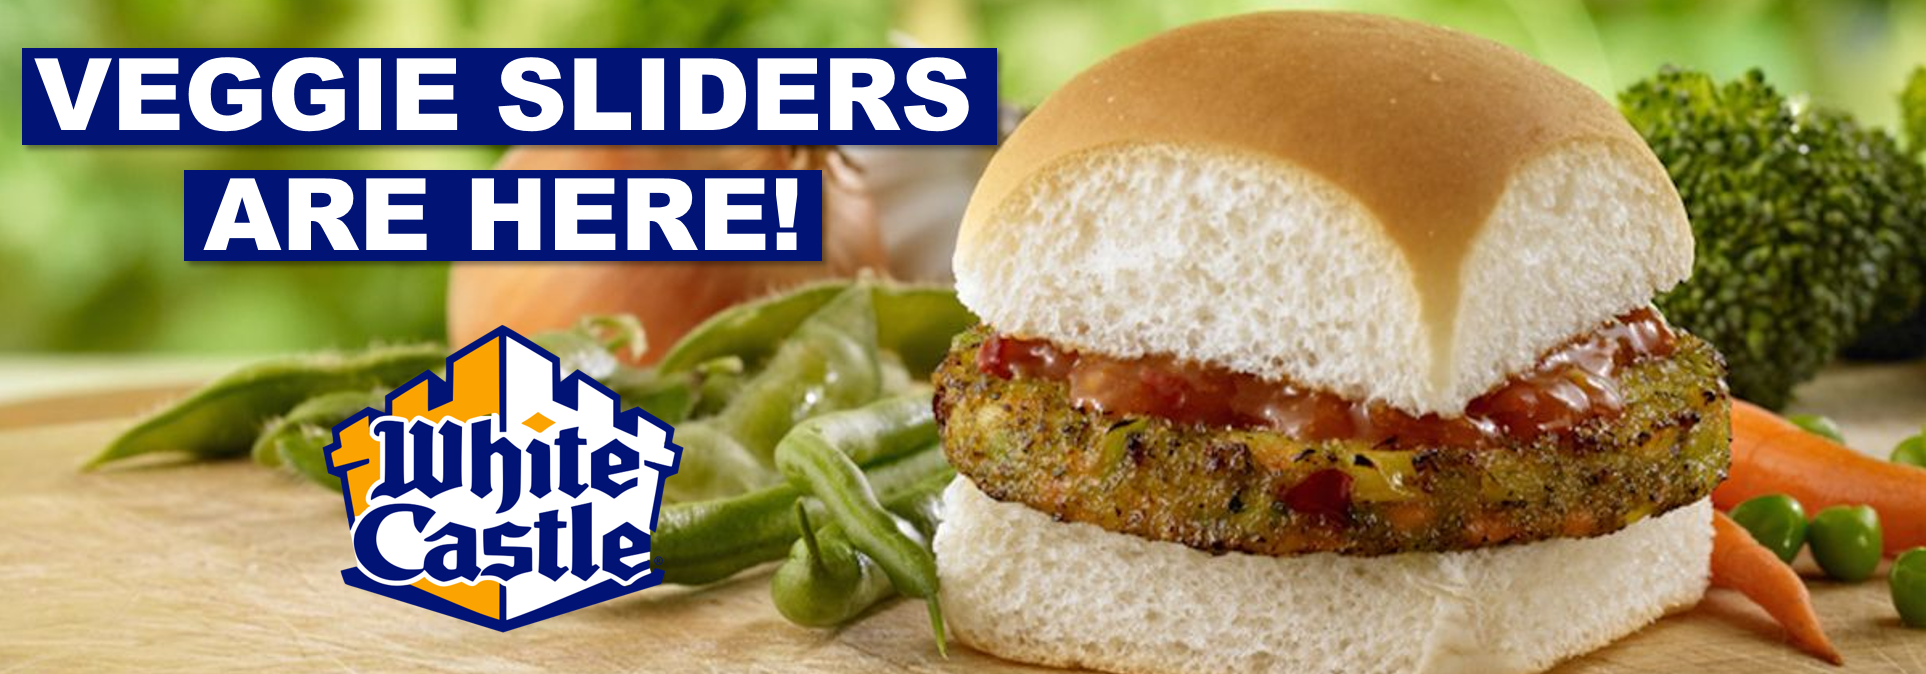 White Castle offers two types of vegan burgers.